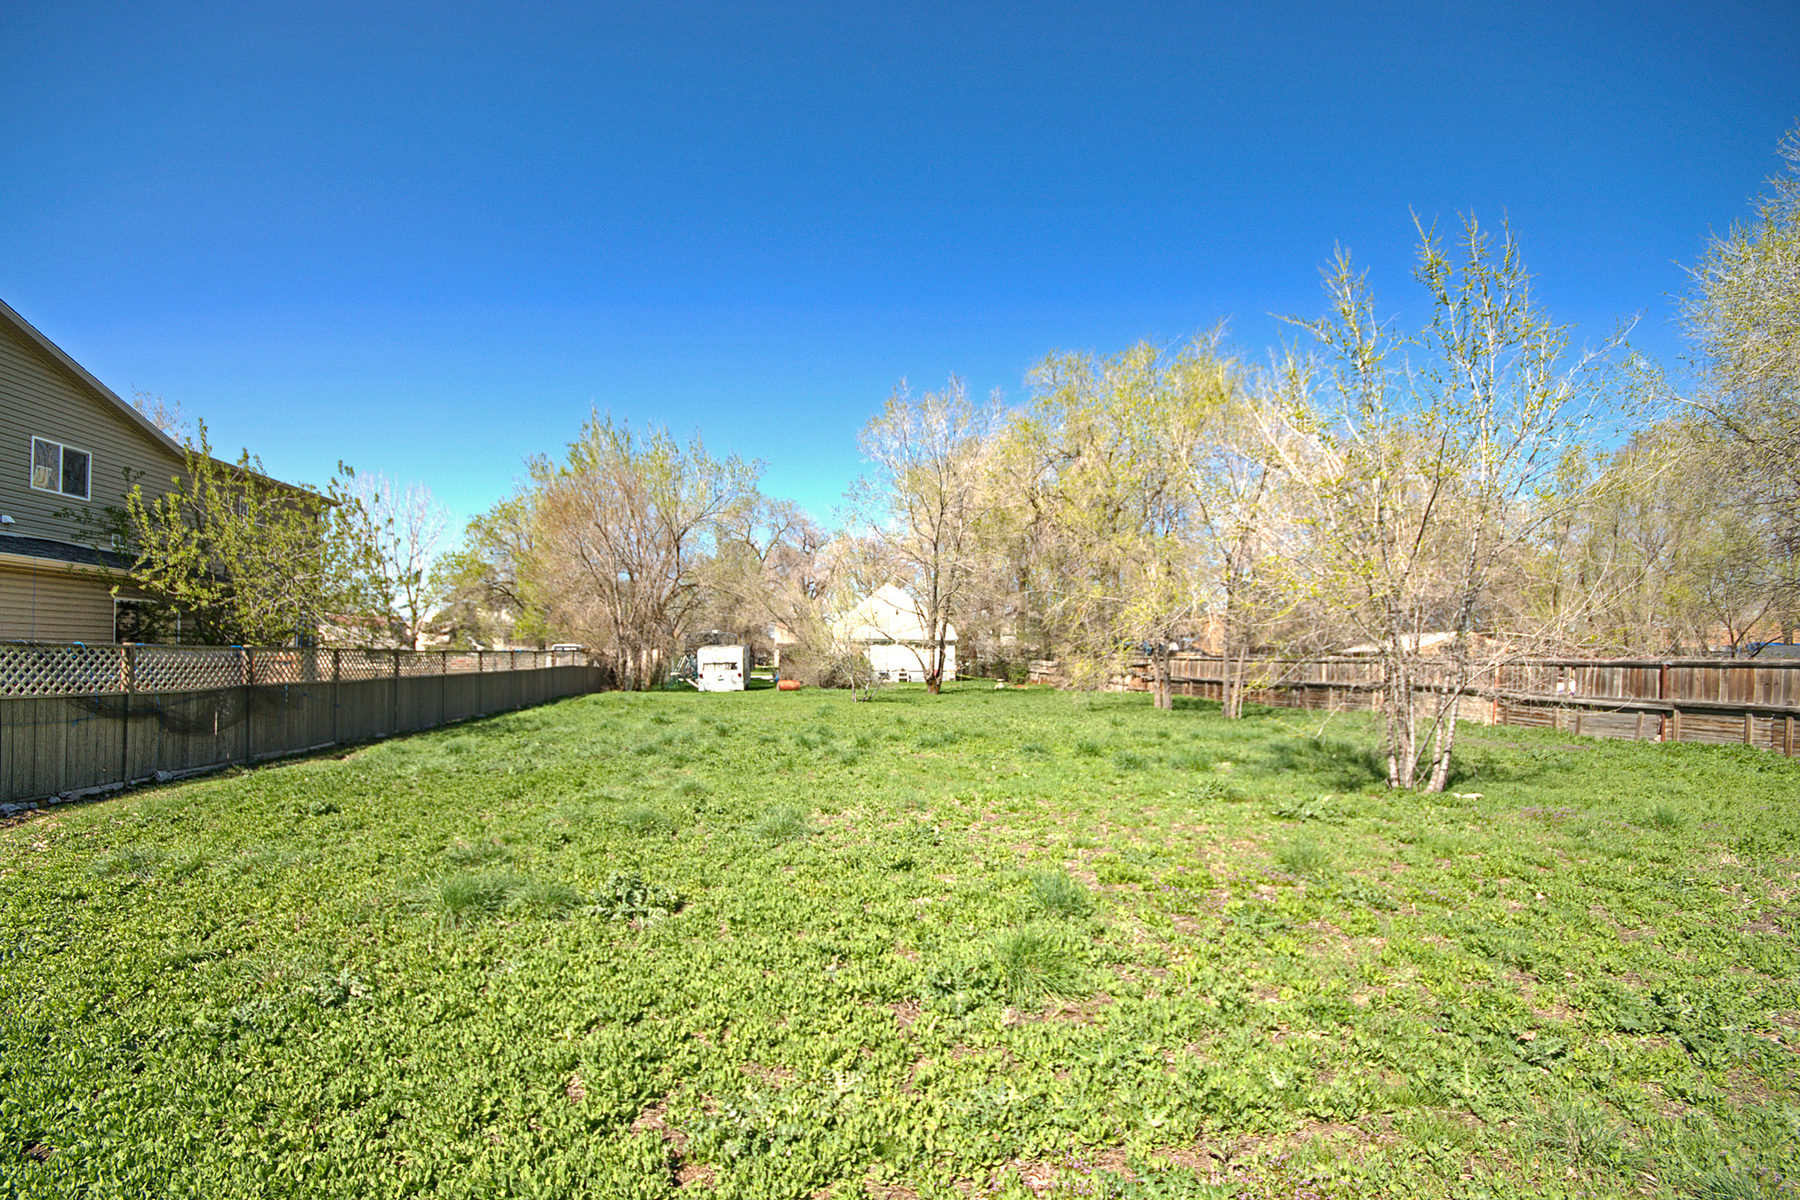 Terreno por un Venta en Great Opportunity! 1510 South 945 West Salt Lake City, Utah, 84104 Estados Unidos